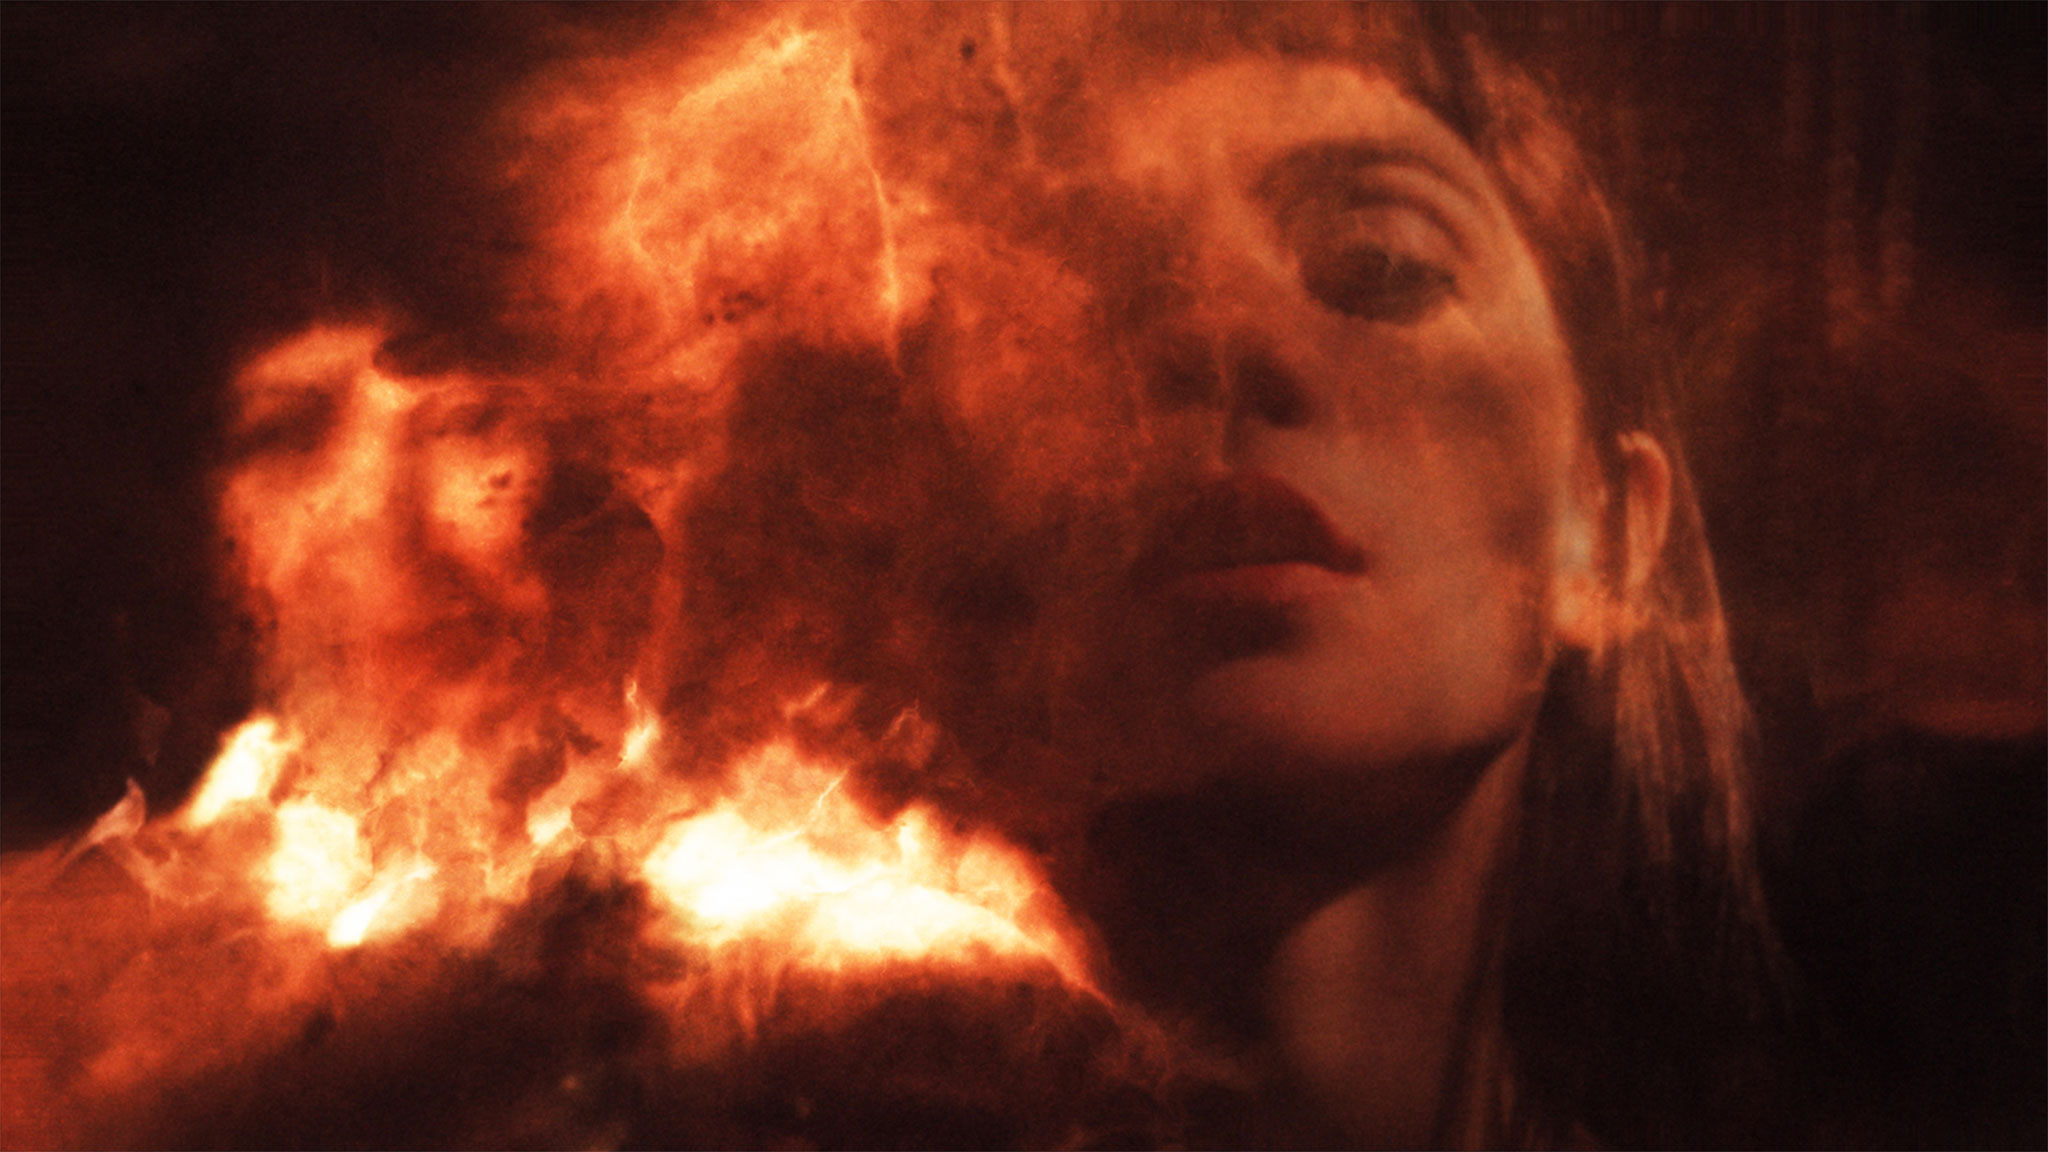 Still from Seances by Guy Maddin.